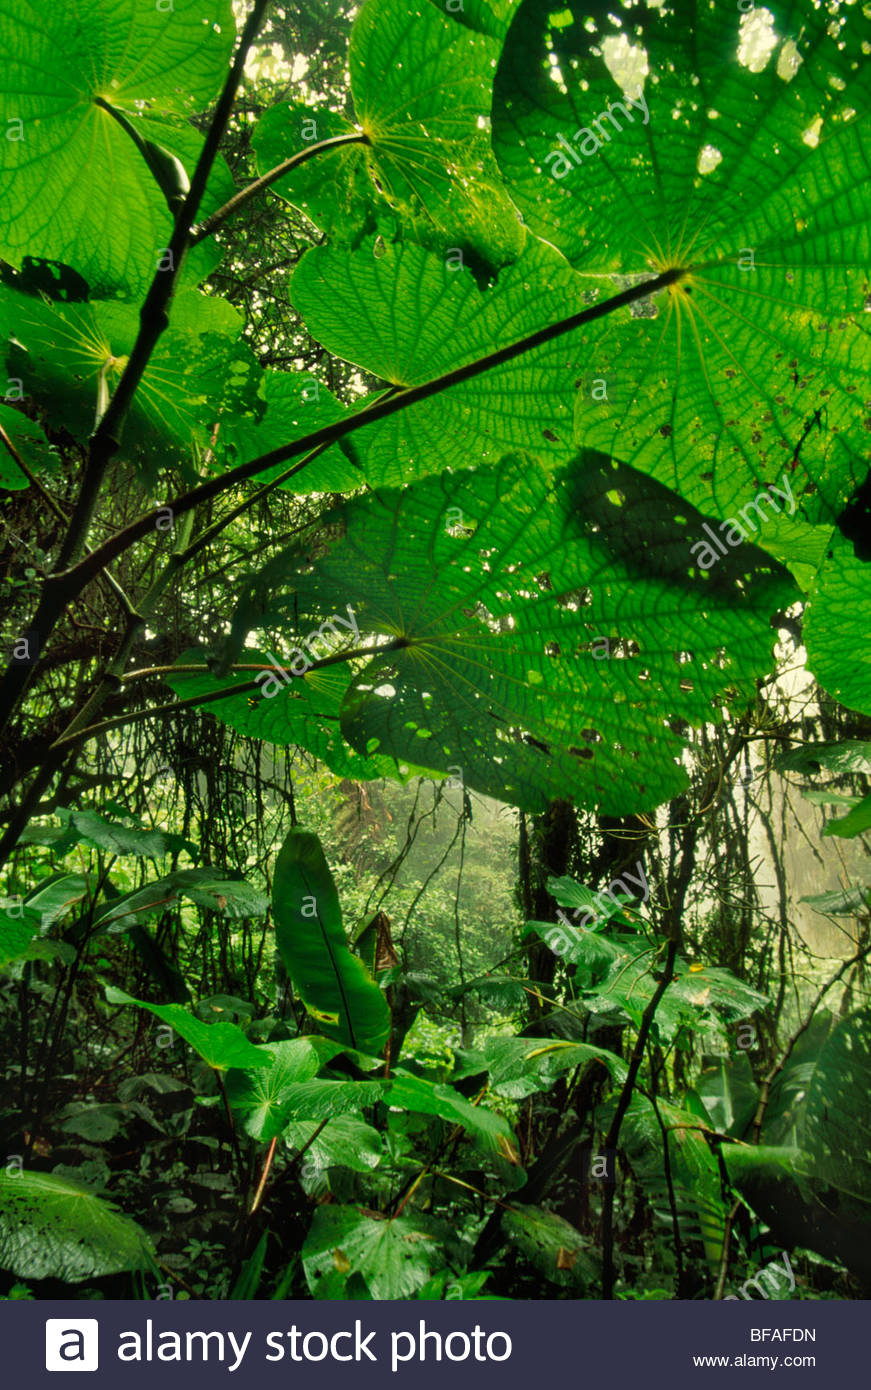 Cloud forest undergrowth, Monteverde Cloud Forest Preserve, Costa Rica - Stock Image